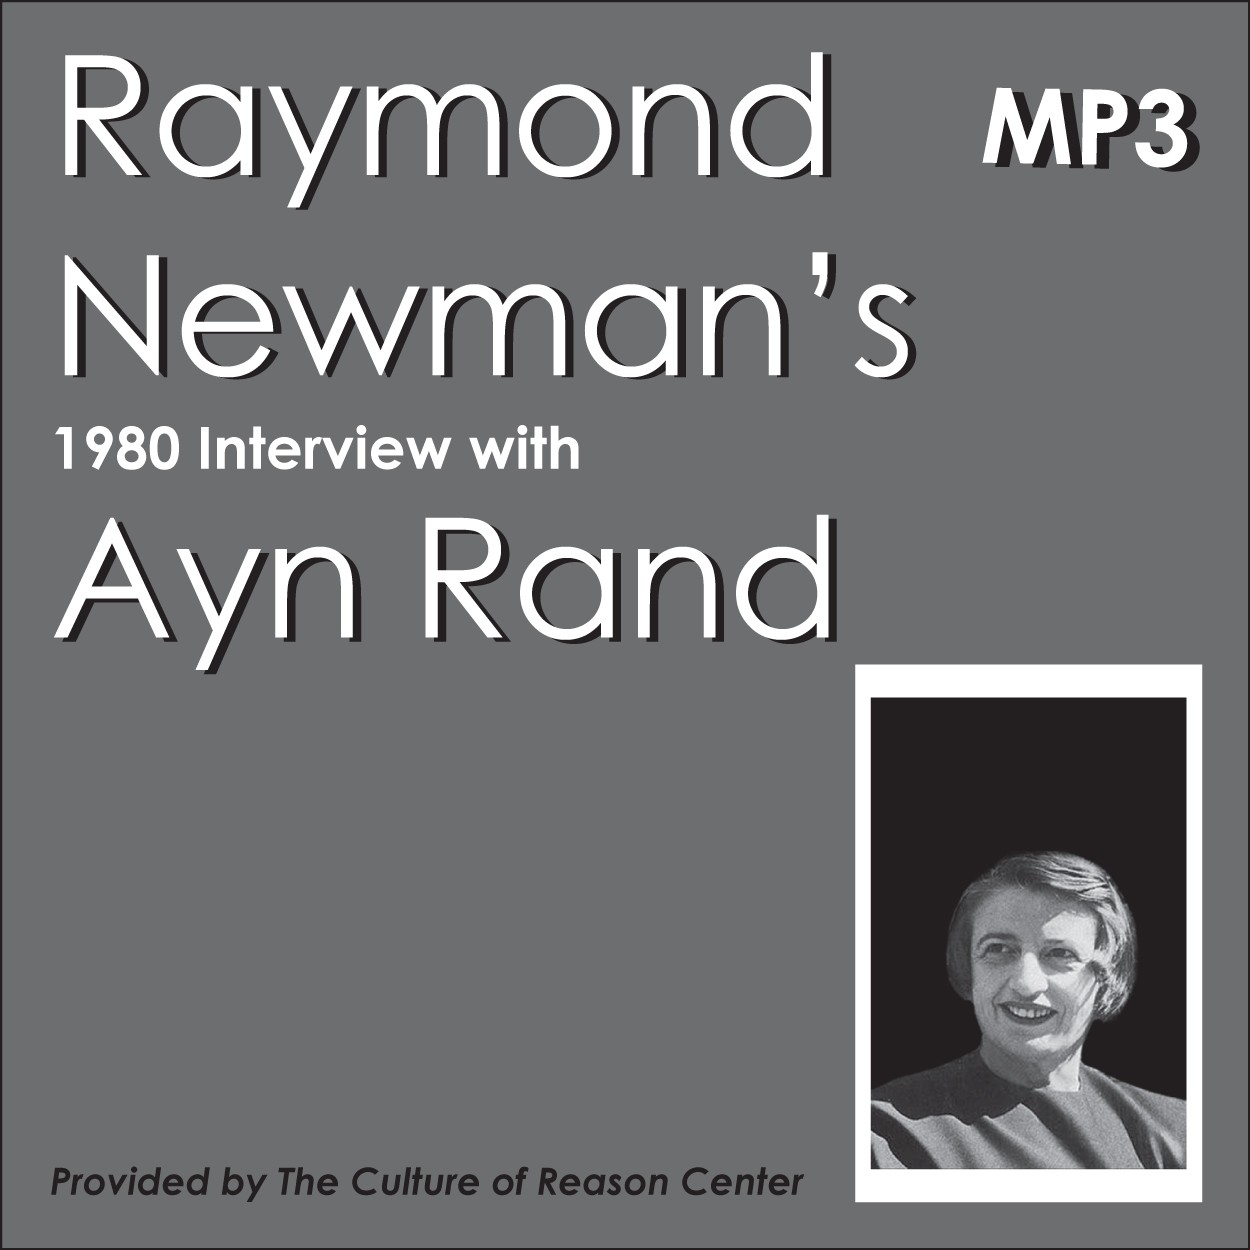 Raymond Newman's 1980 Interview with Ayn Rand